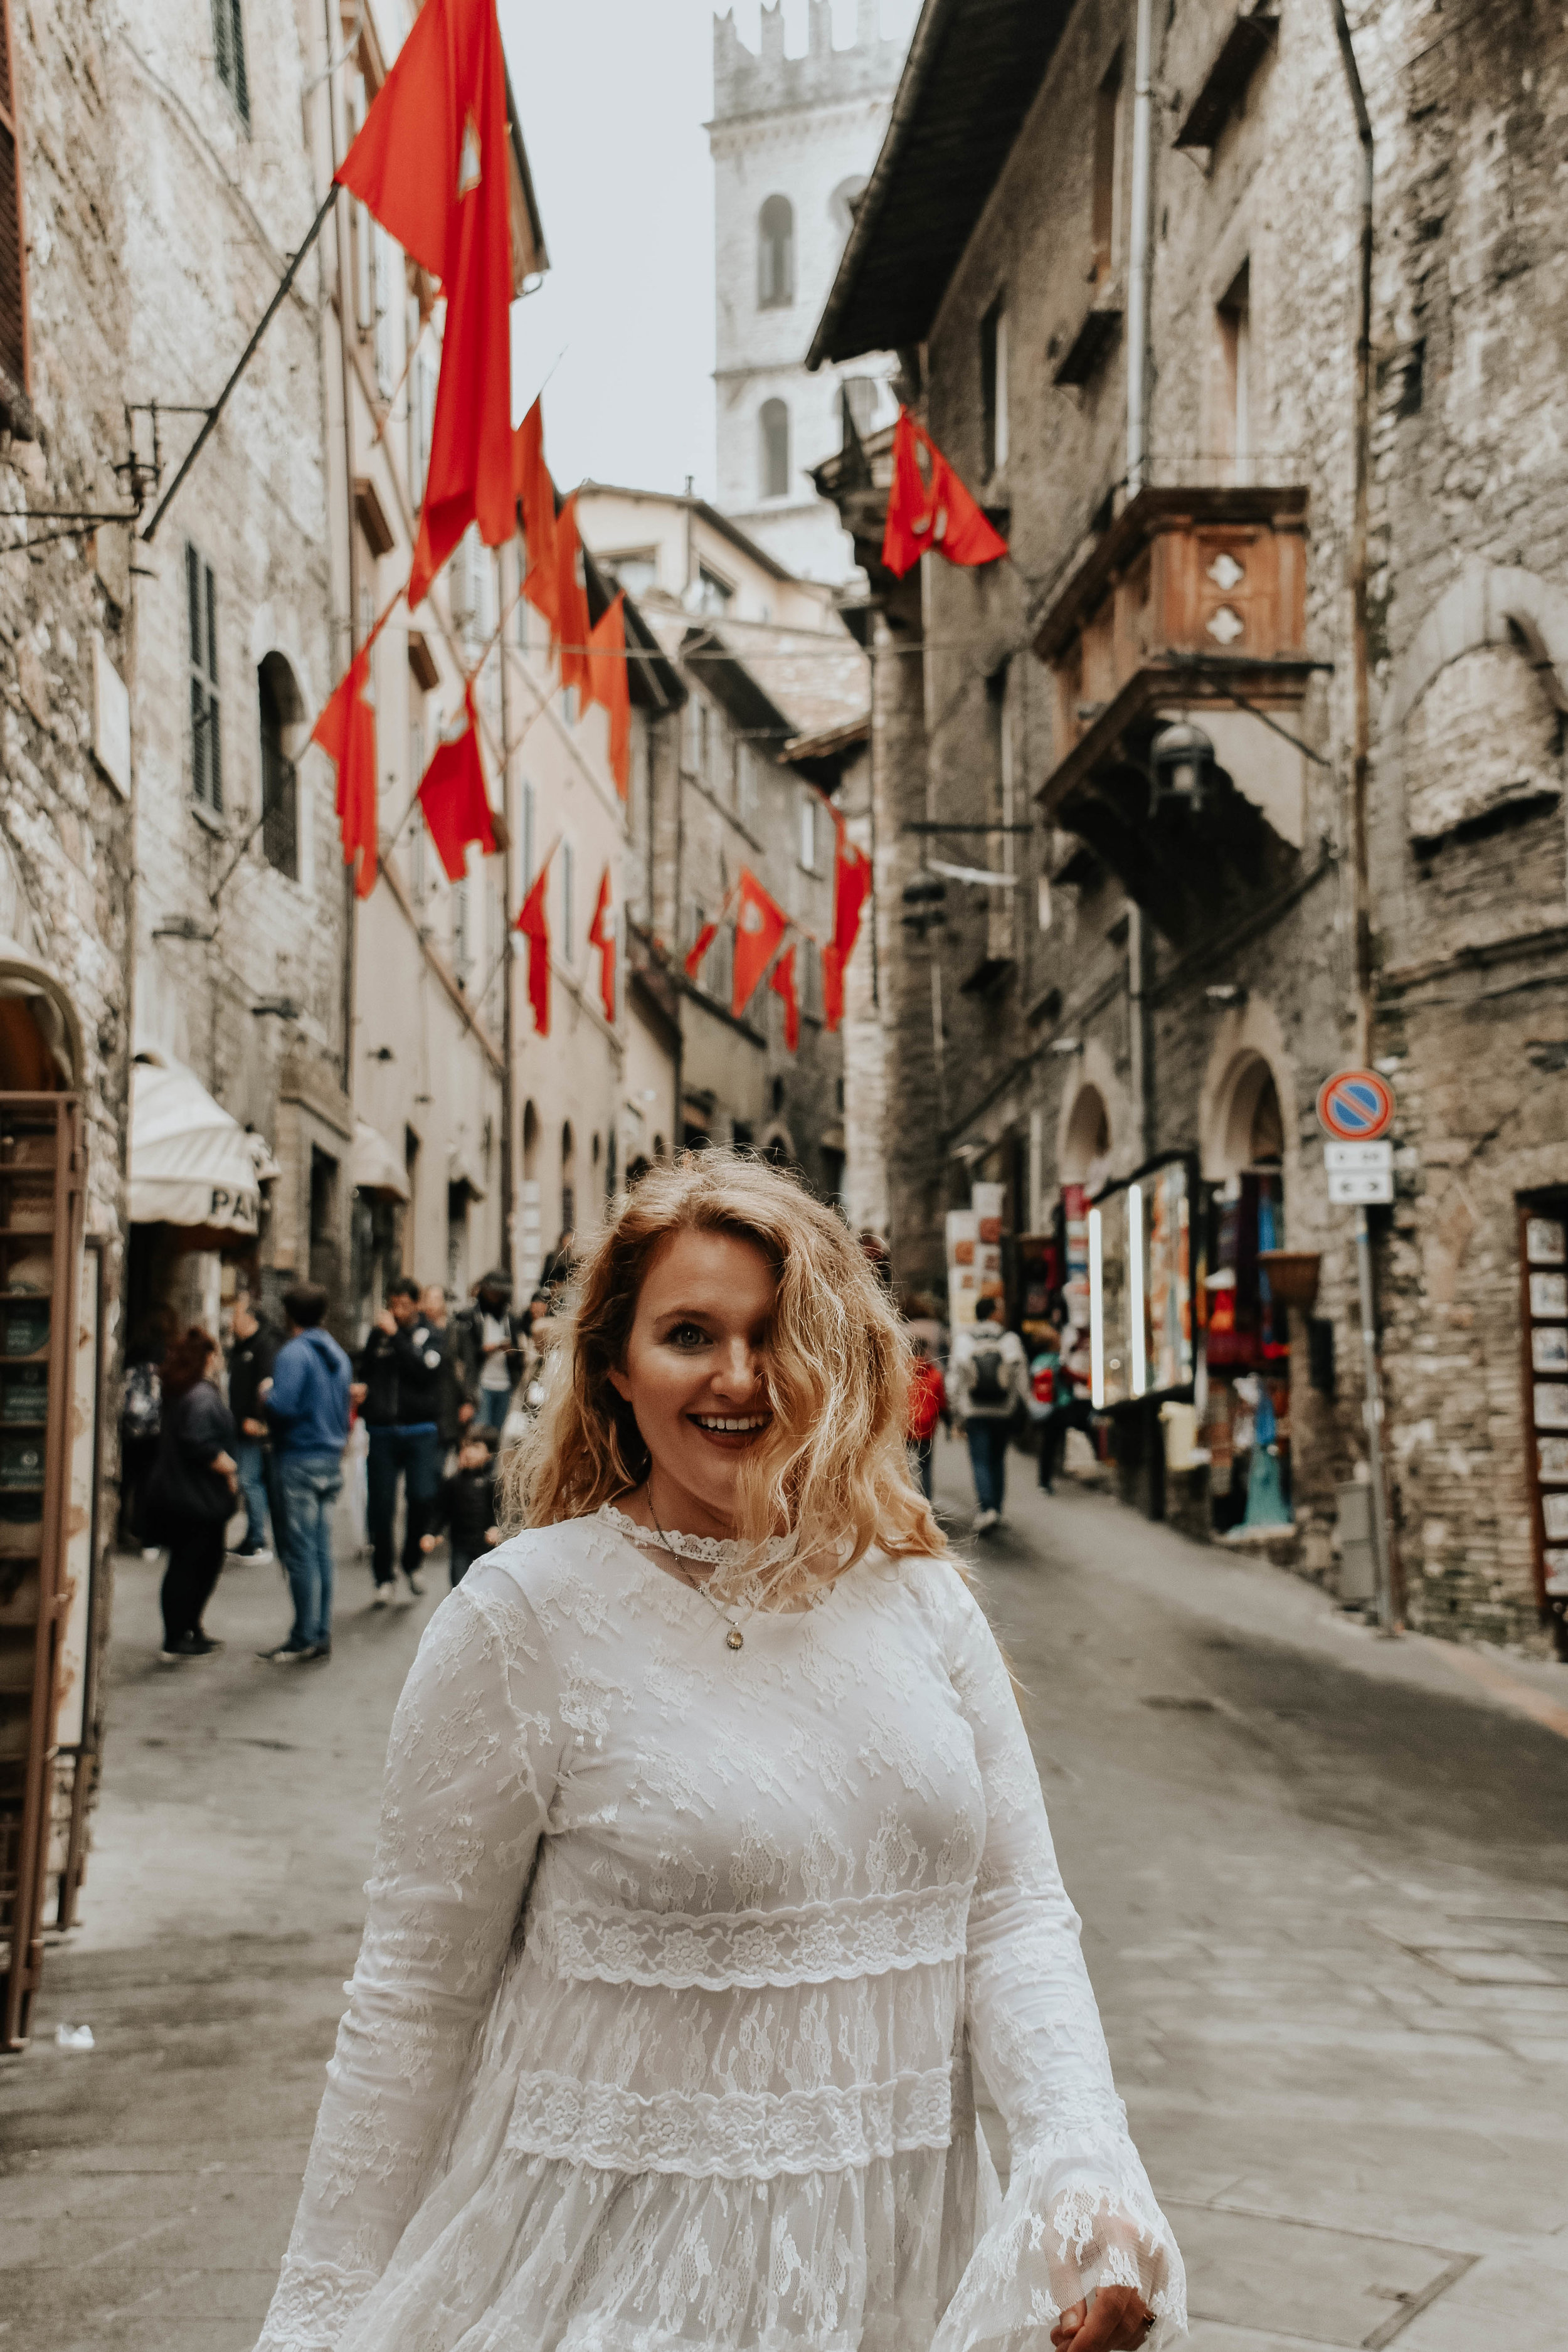 Helene in Assisi, Italy